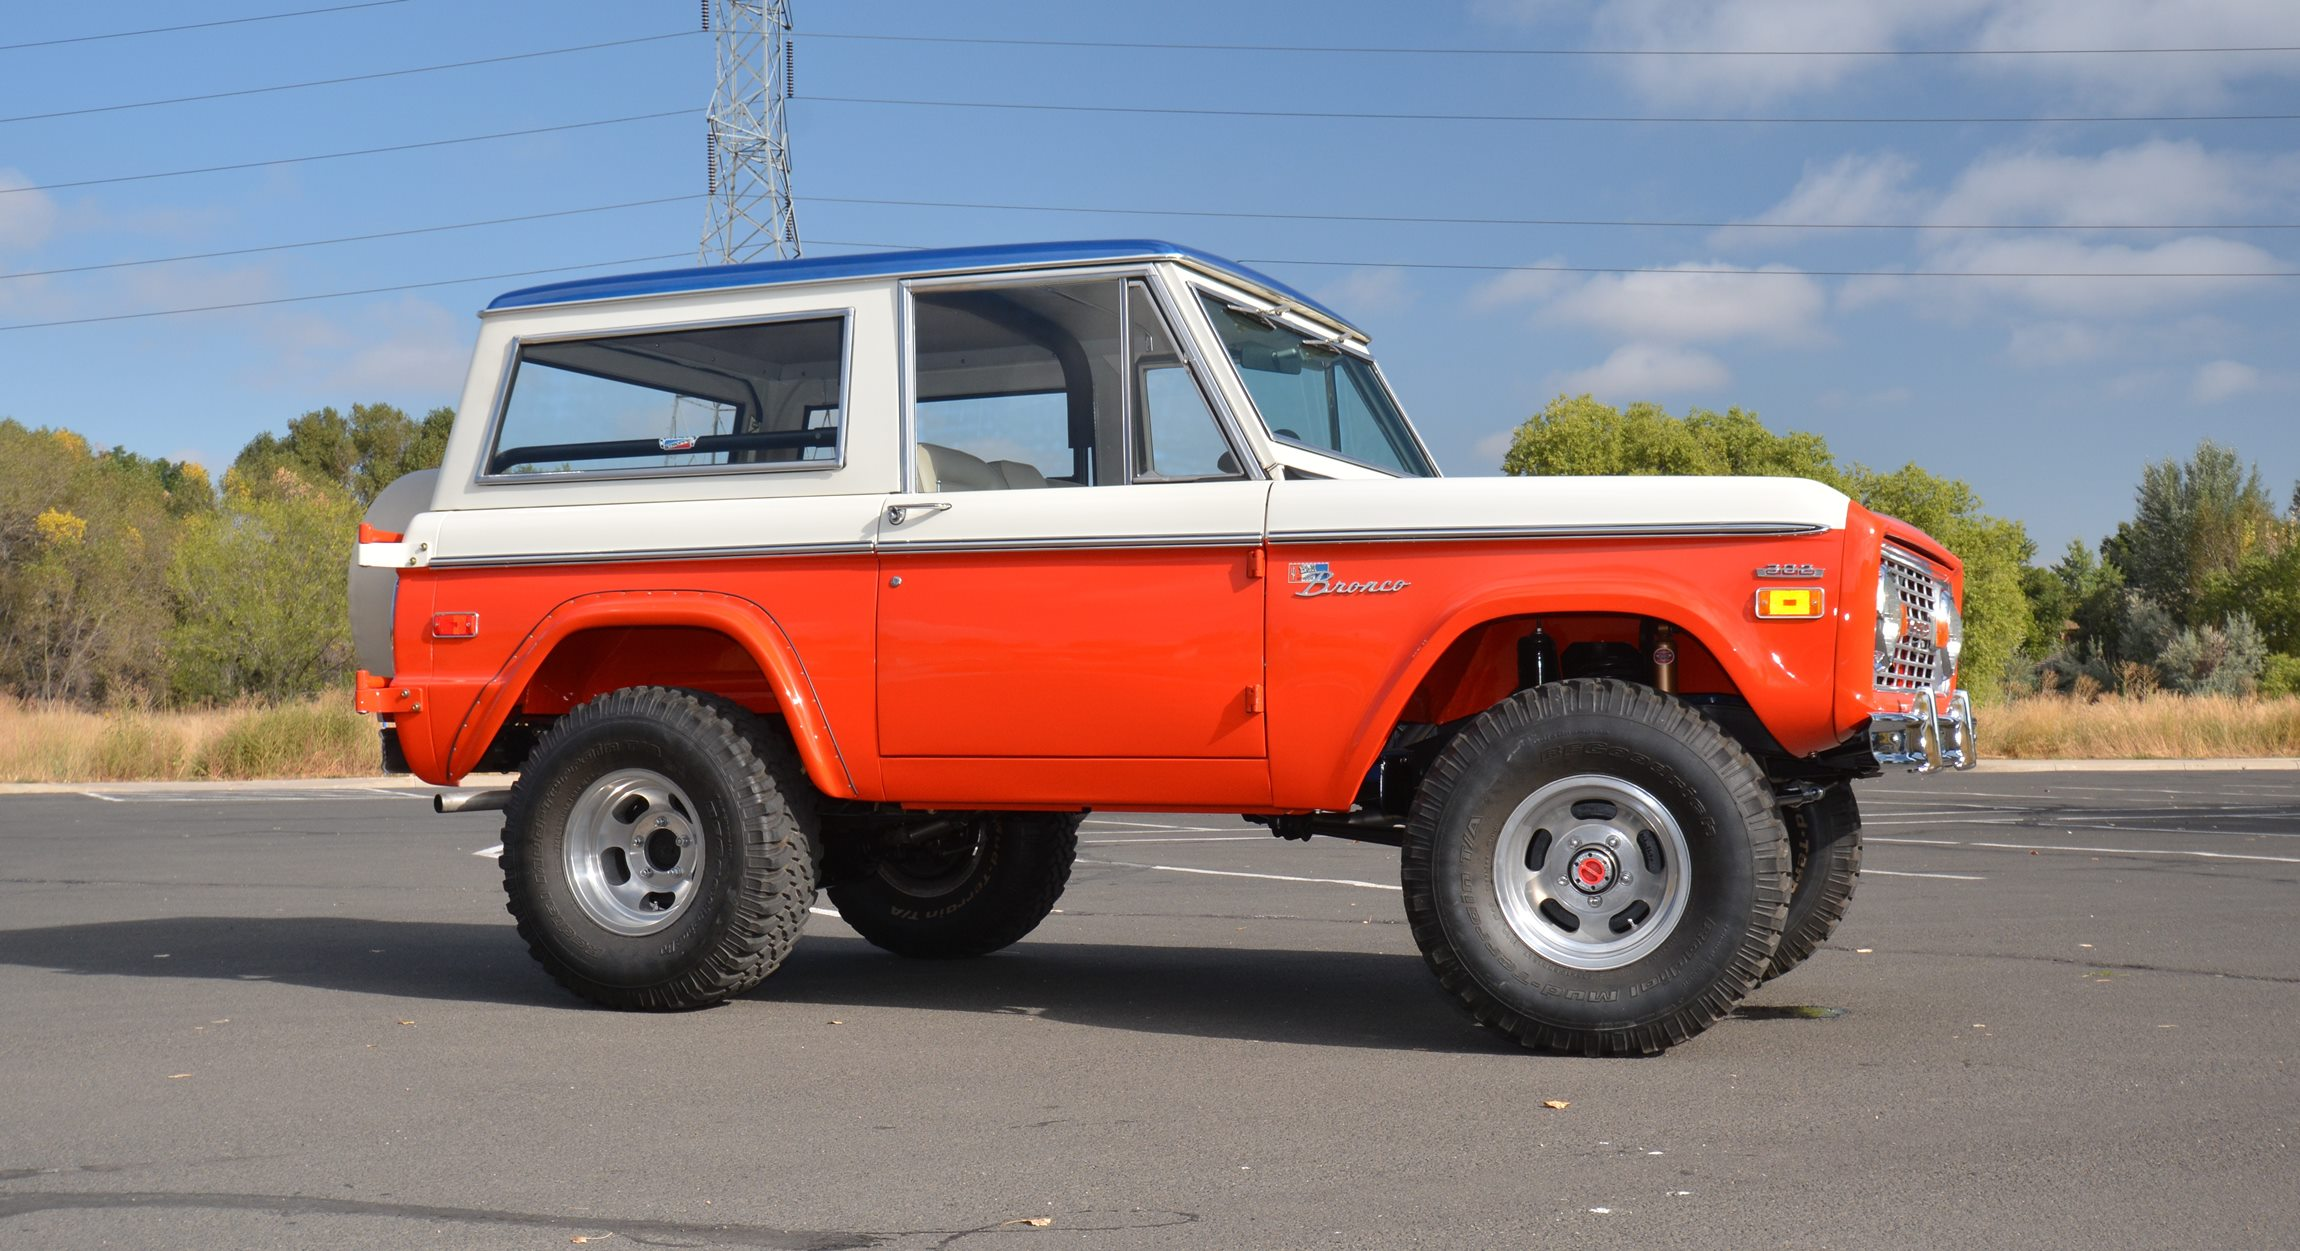 1971 ford bronco stroppe baja edition is retro delight sharp bumps 1971 ford bronco stroppe baja edition is retro delight sharp bumps and all publicscrutiny Image collections